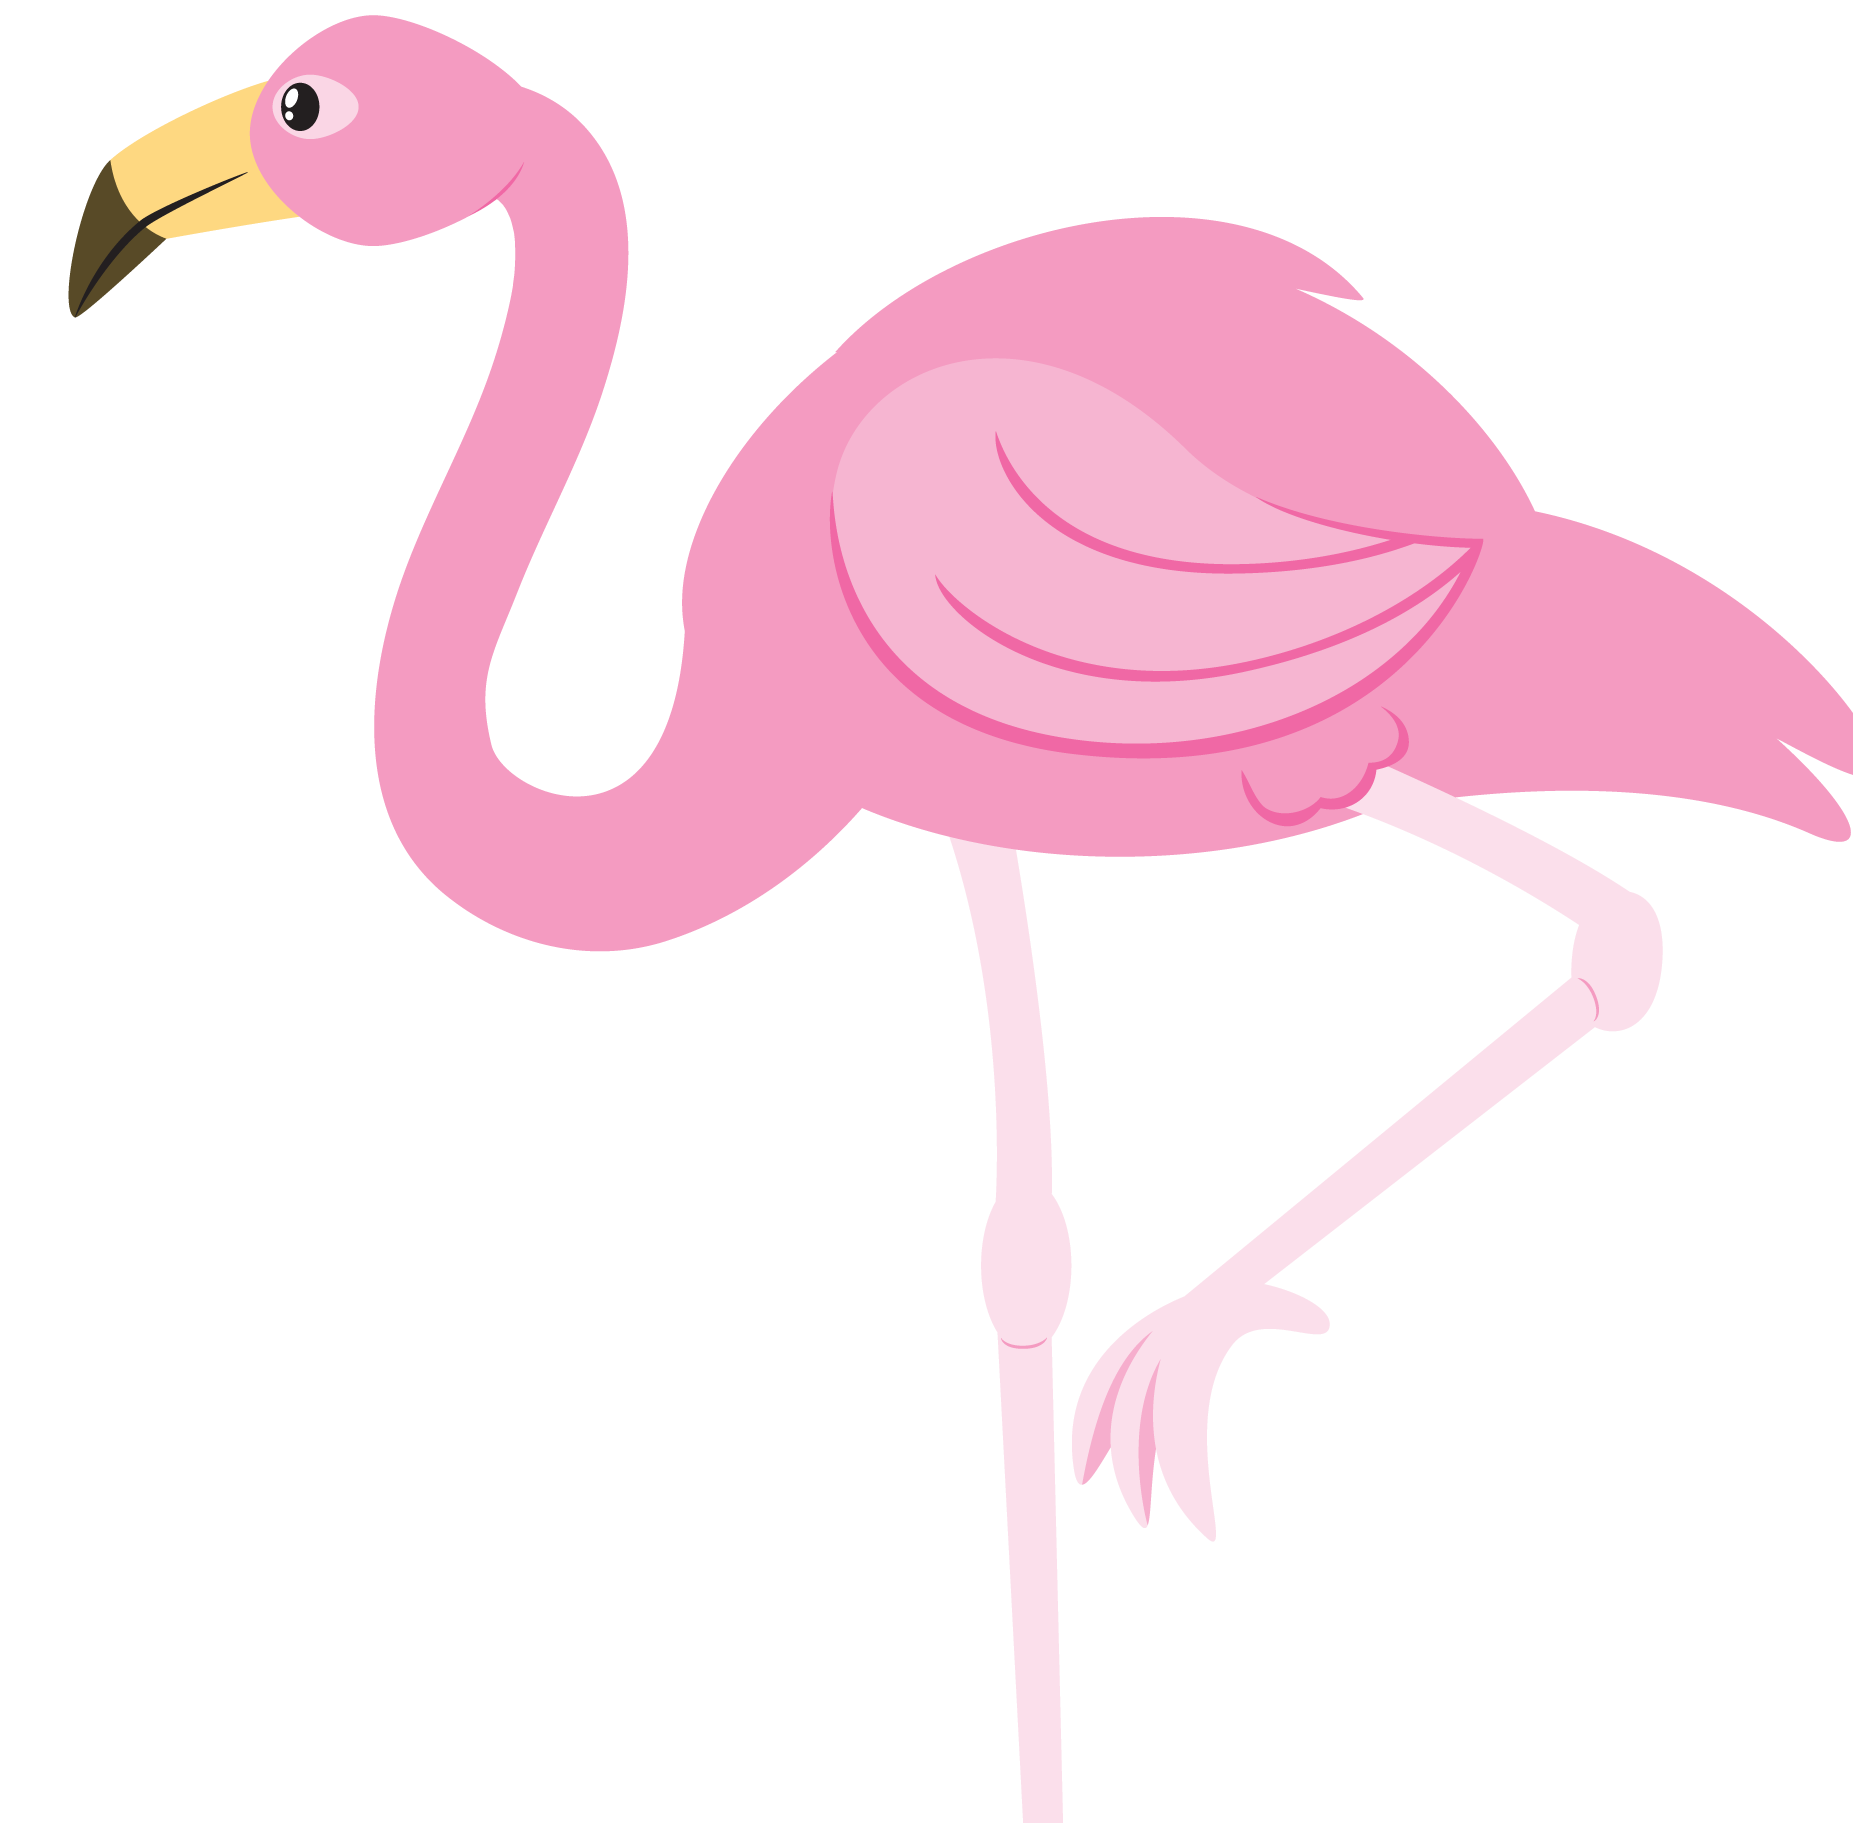 Flamingo Transparent PNG Clipart, Cute Flamingo, Pink.